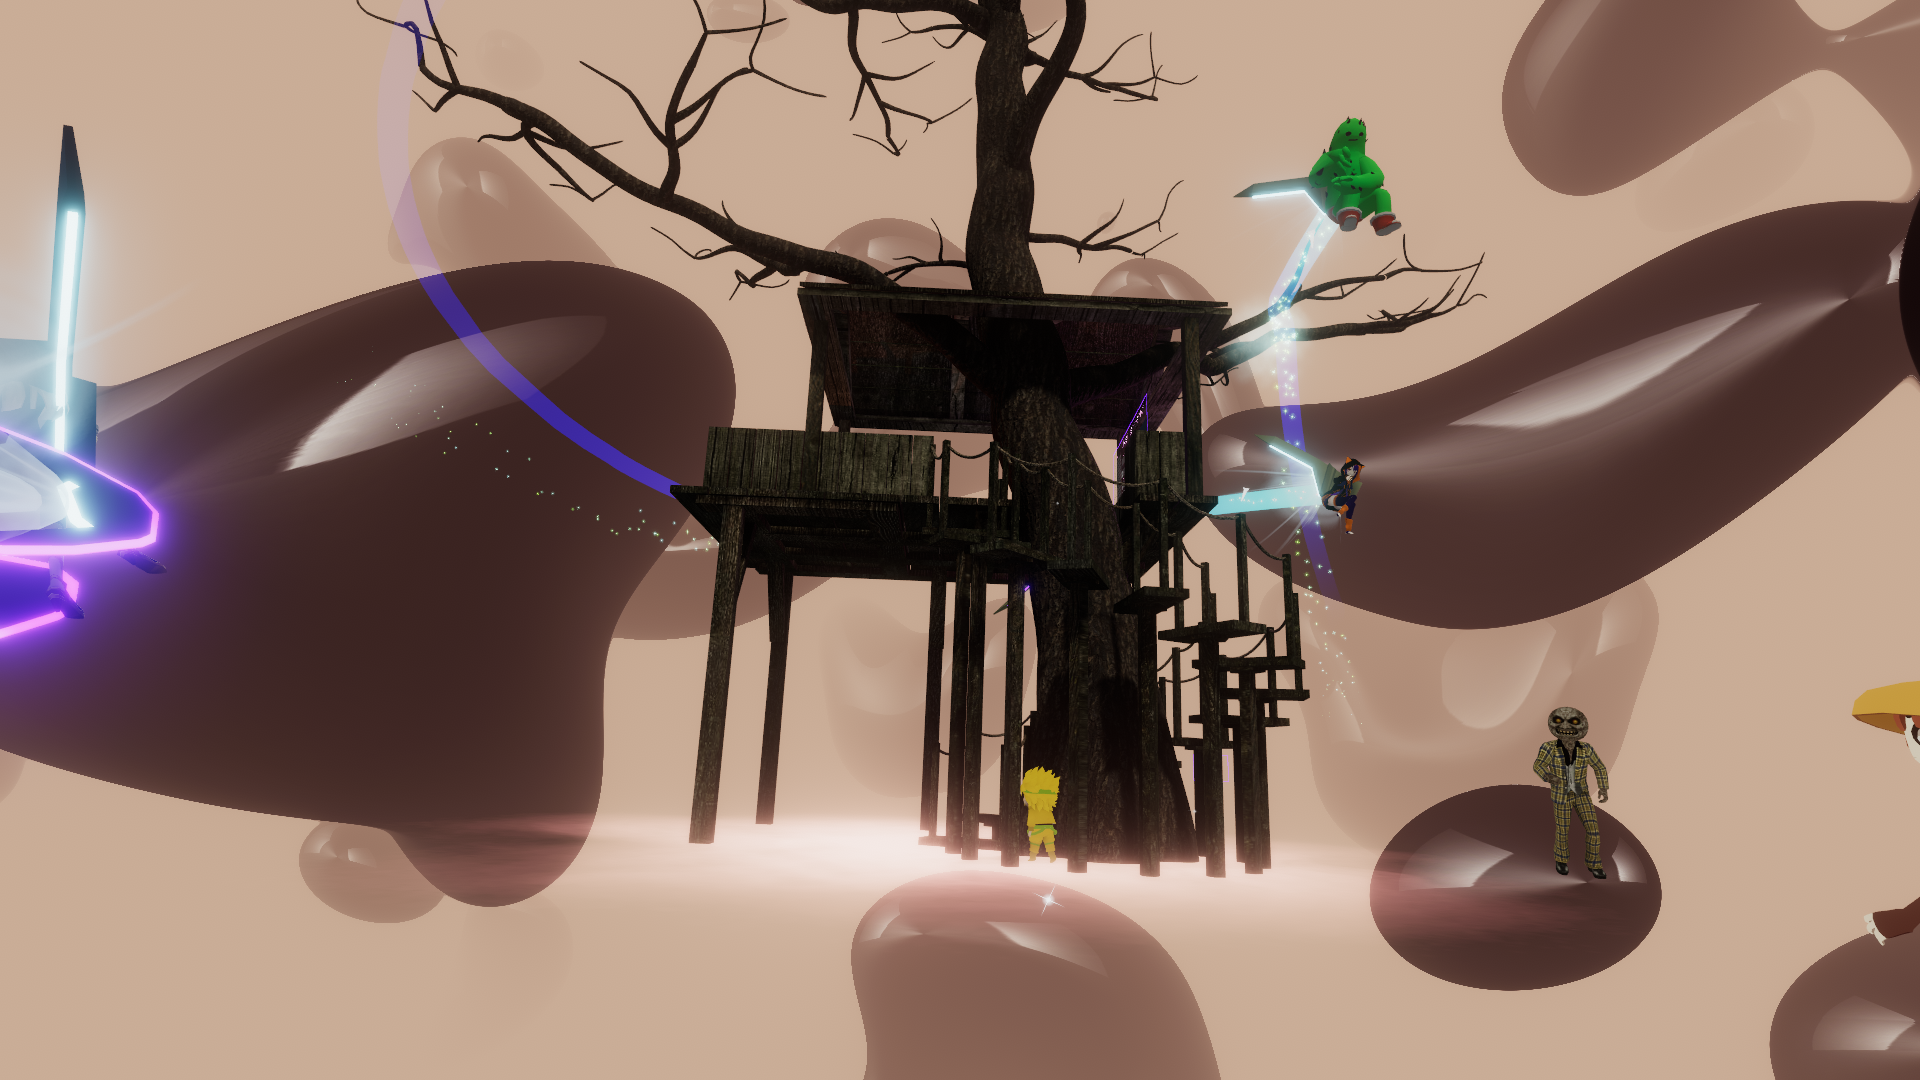 brown blobs in the background. A treehouse punctured by a tree is centered. Different virtual avatars fly around the frame.